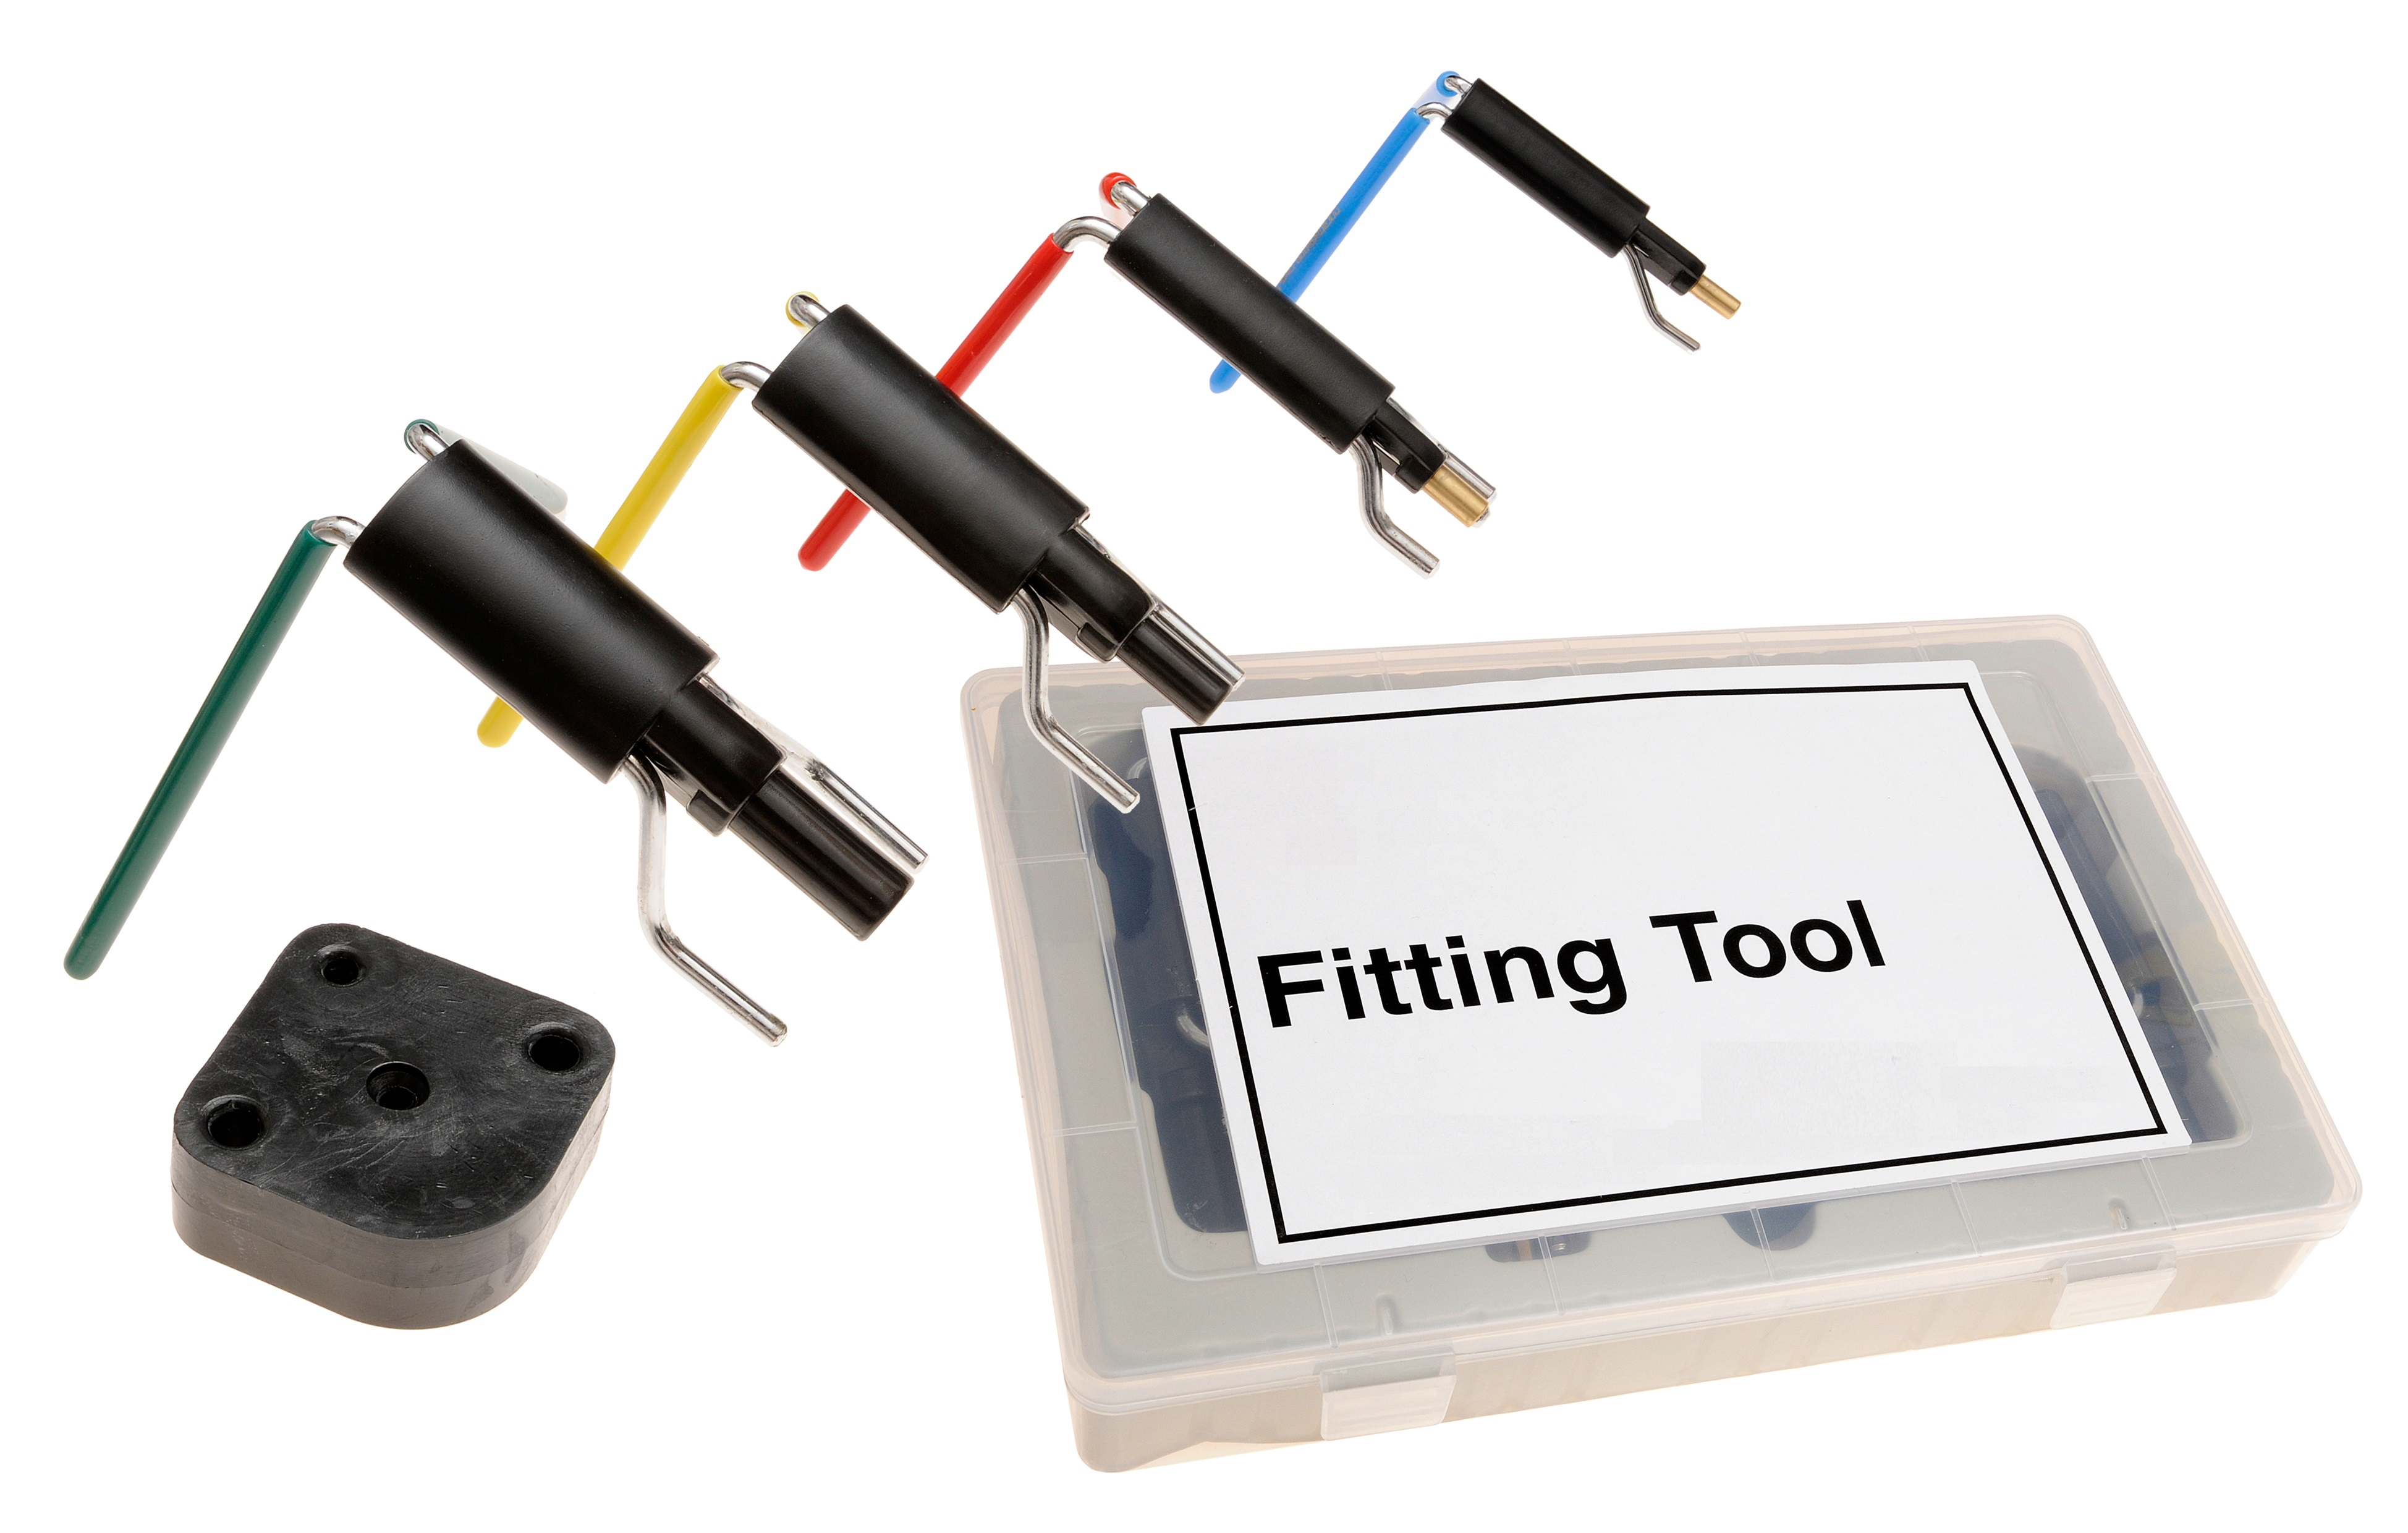 Tools-Fitting Tool